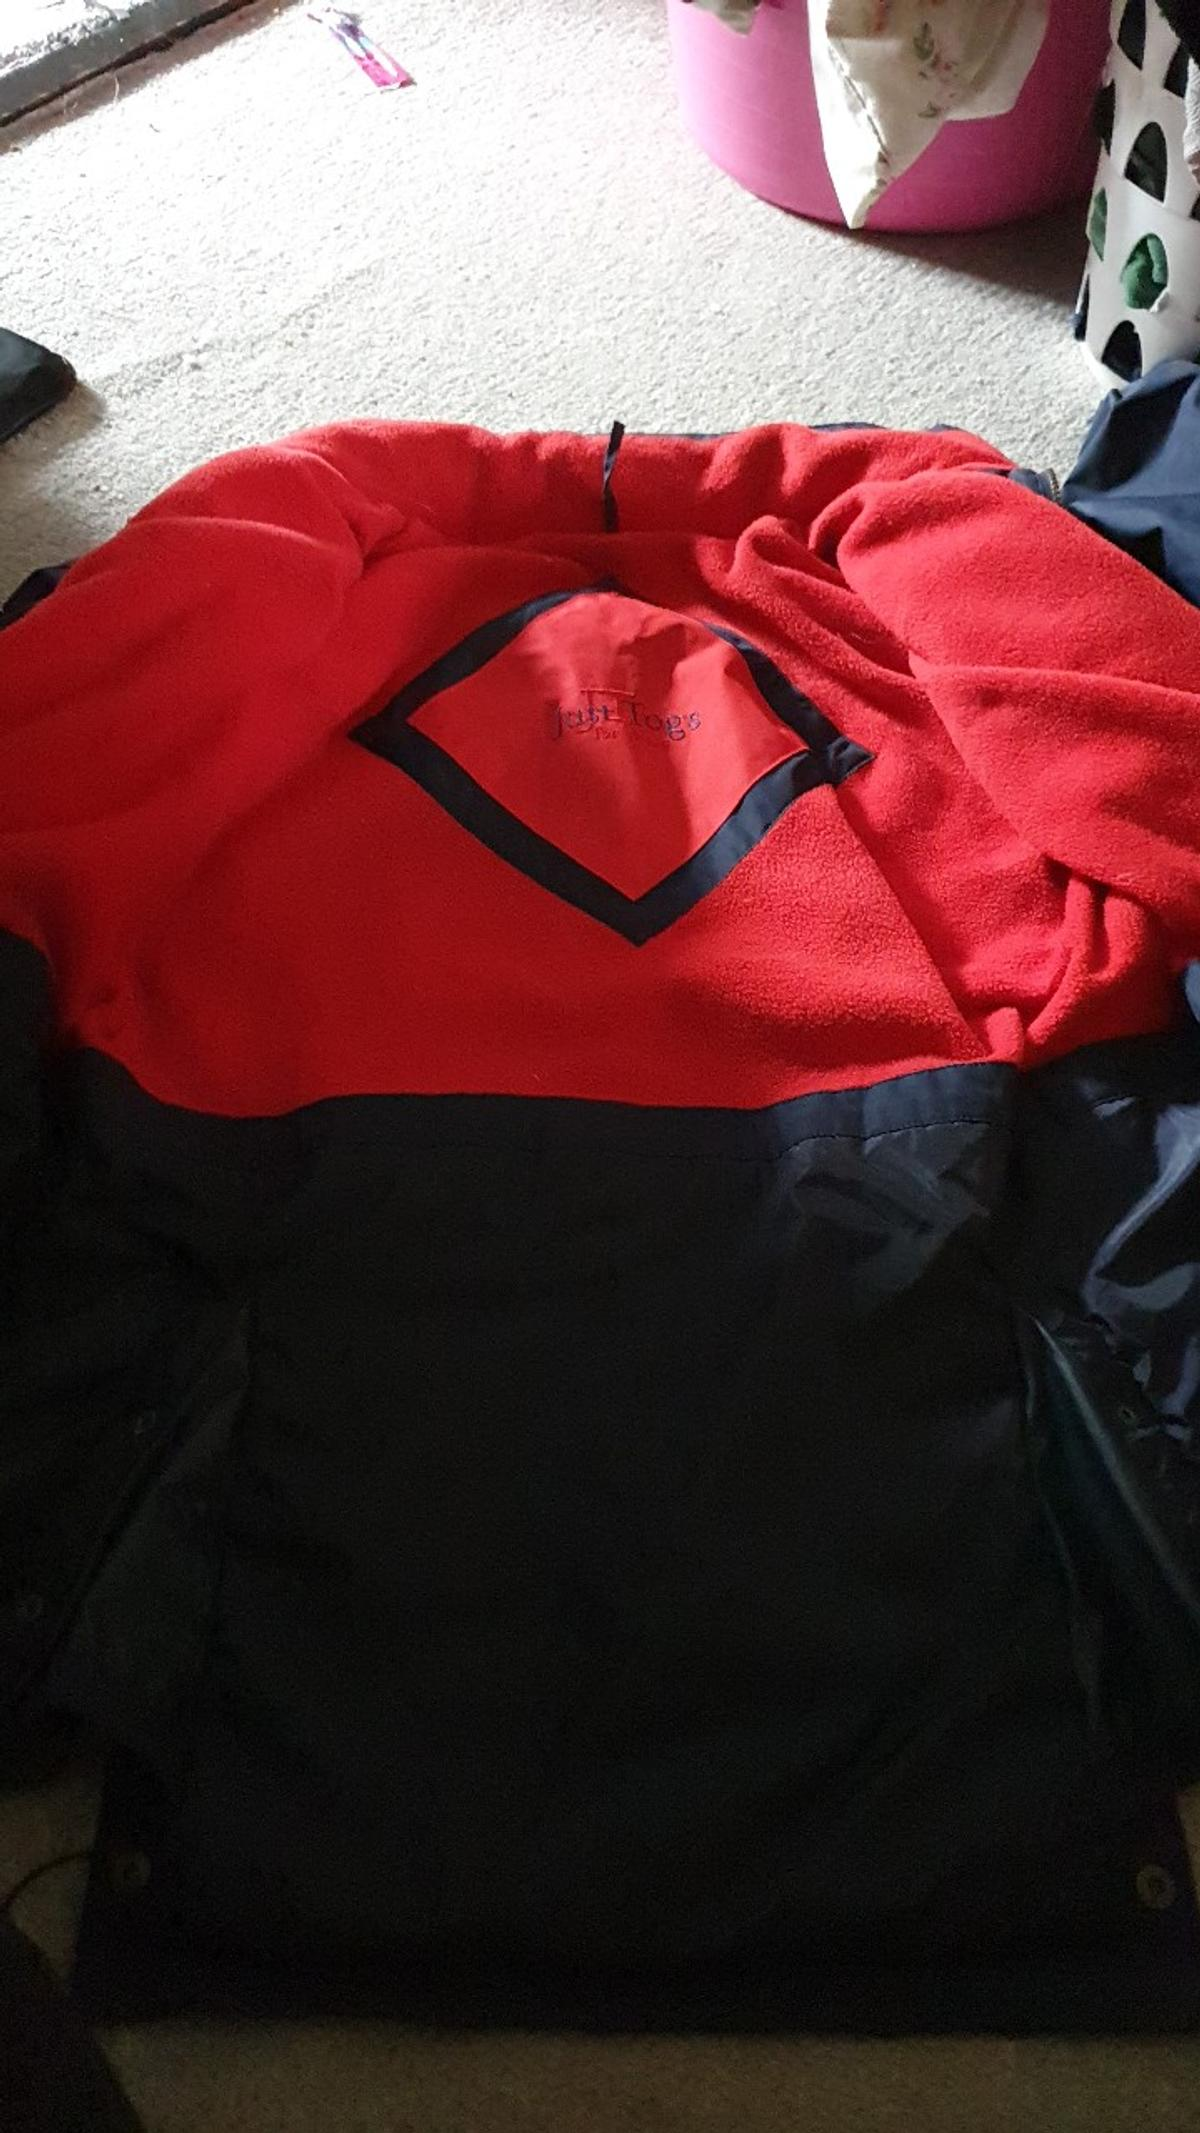 just togs riders jacket with hood. medium. New condition barely ever worn as was too big.